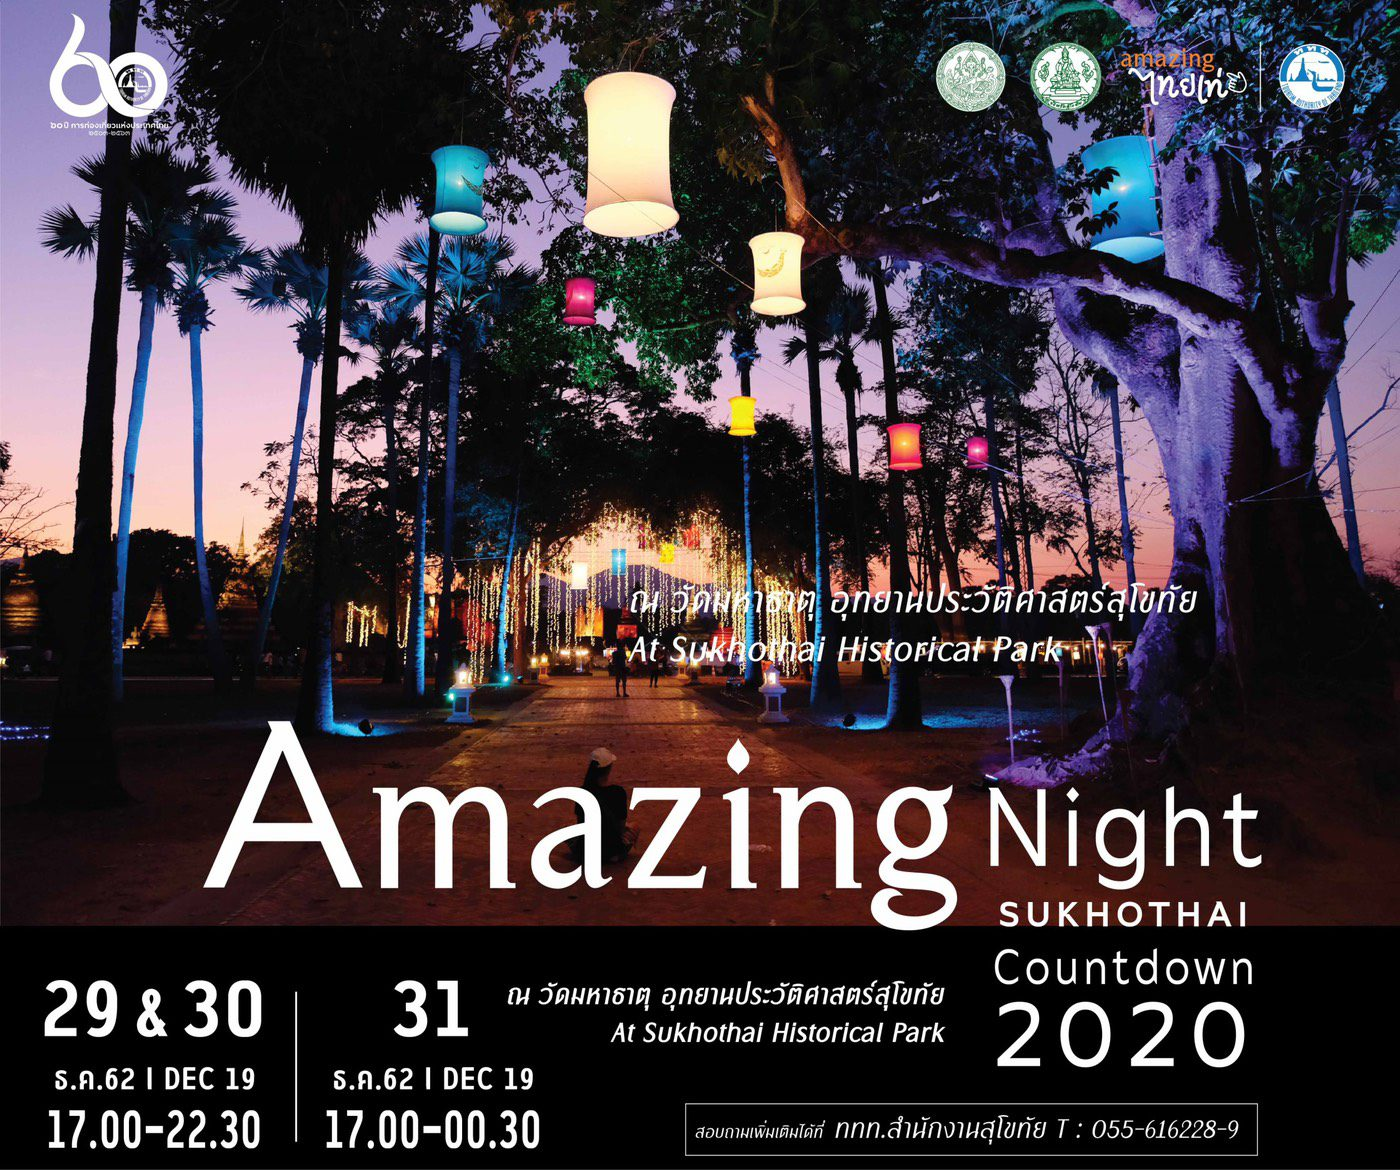 Amazing Night Sukhothai Countdown 2020